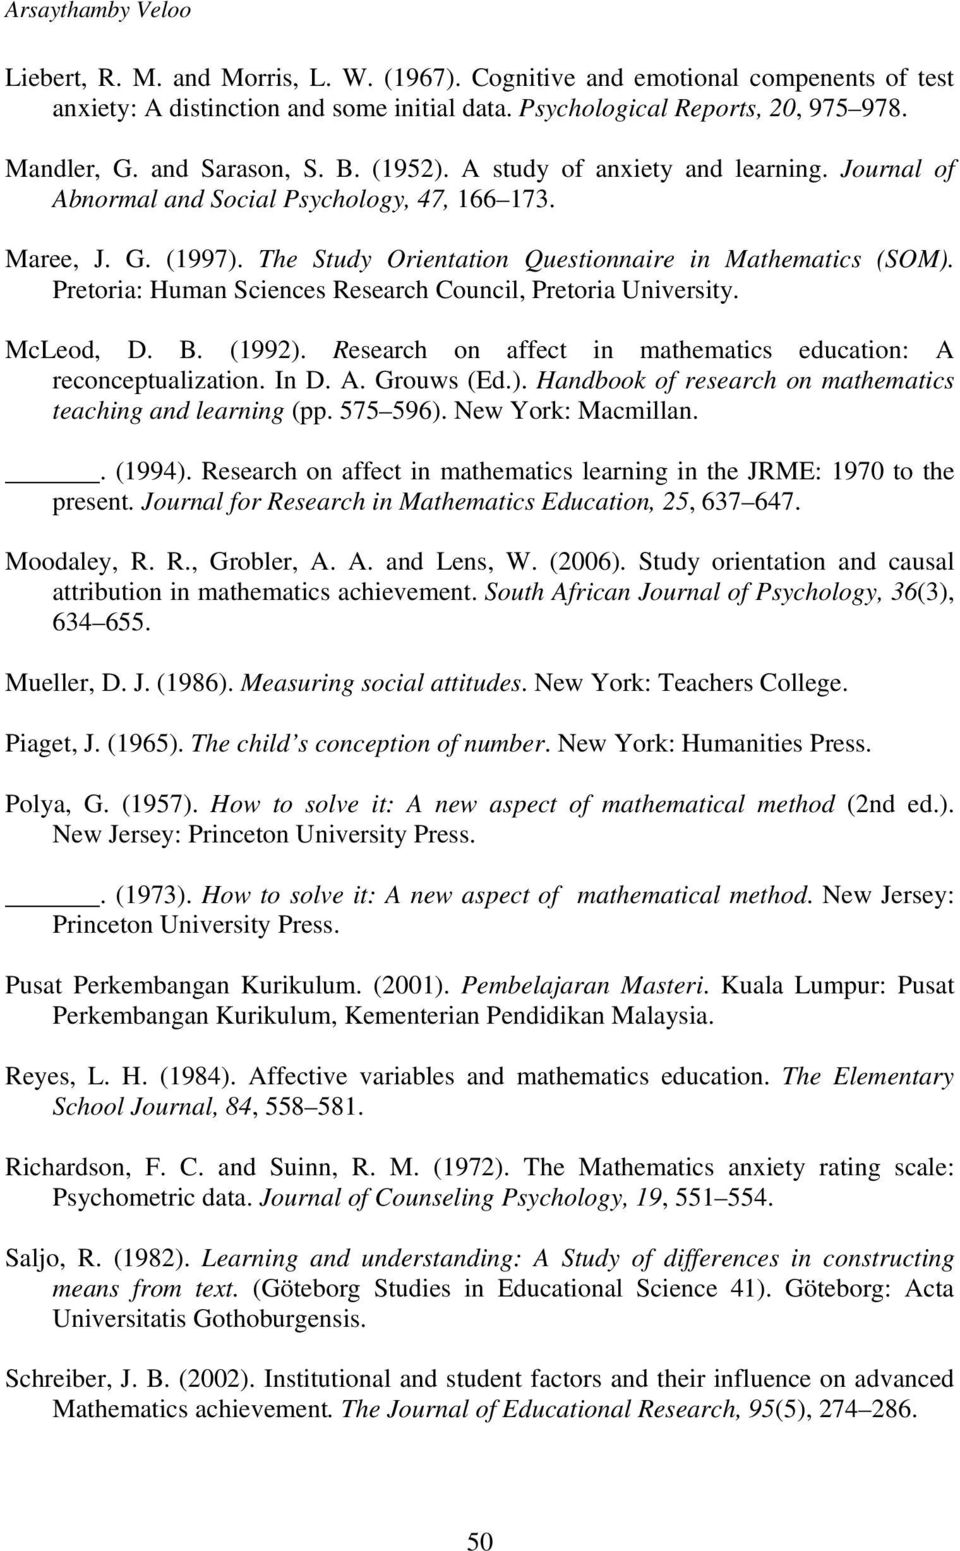 Pretoria: Human Sciences Research Council, Pretoria University. McLeod, D. B. (1992). Research on affect in mathematics education: A reconceptualization. In D. A. Grouws (Ed.). Handbook of research on mathematics teaching and learning (pp.